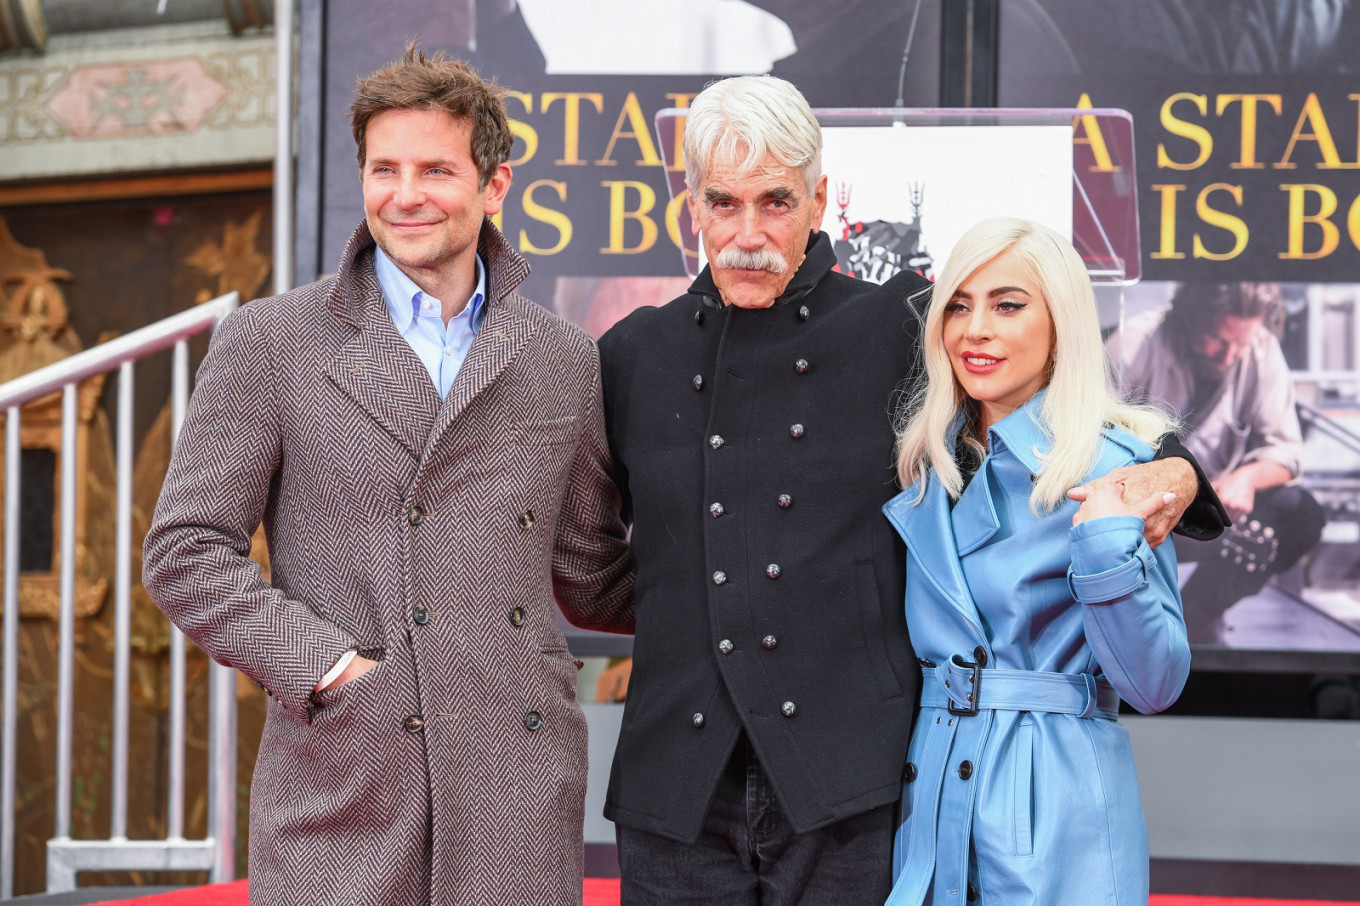 Sam Elliott honored at Hollywood ceremony as Lady Gaga lends support